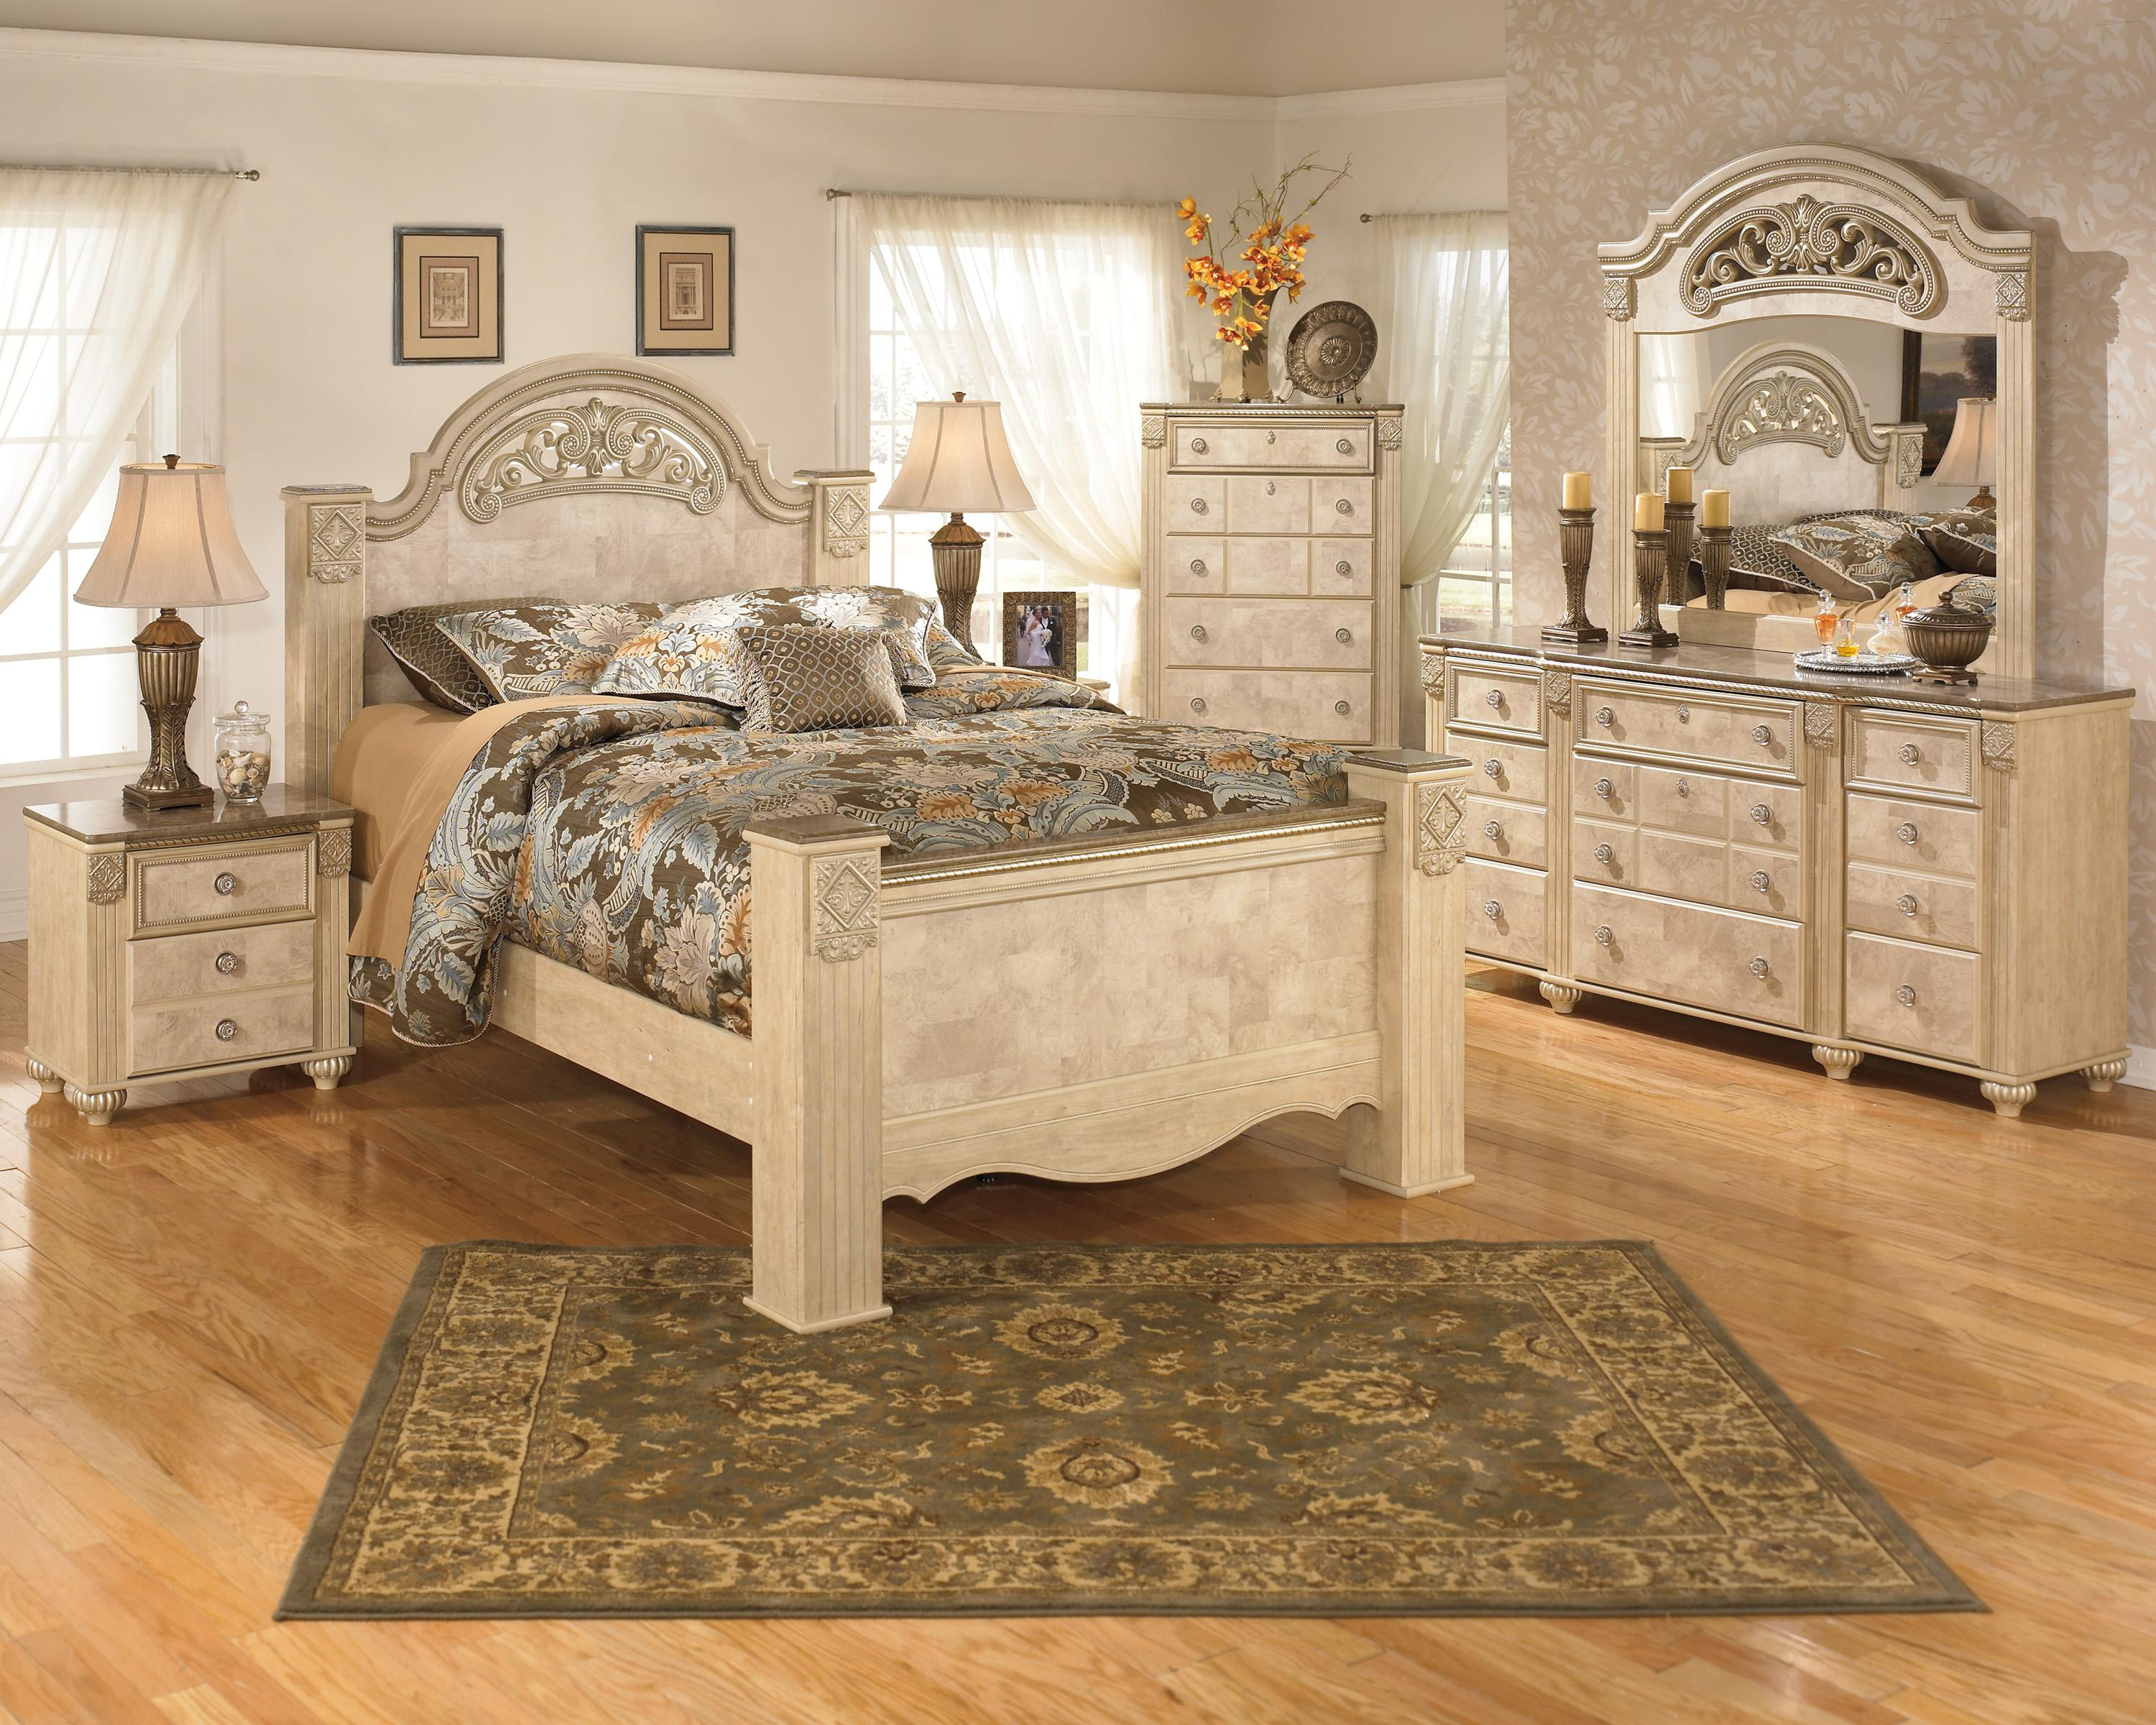 Signature Design By Ashley Saveaha King Bedroom Group Ahfa Dealer Locator